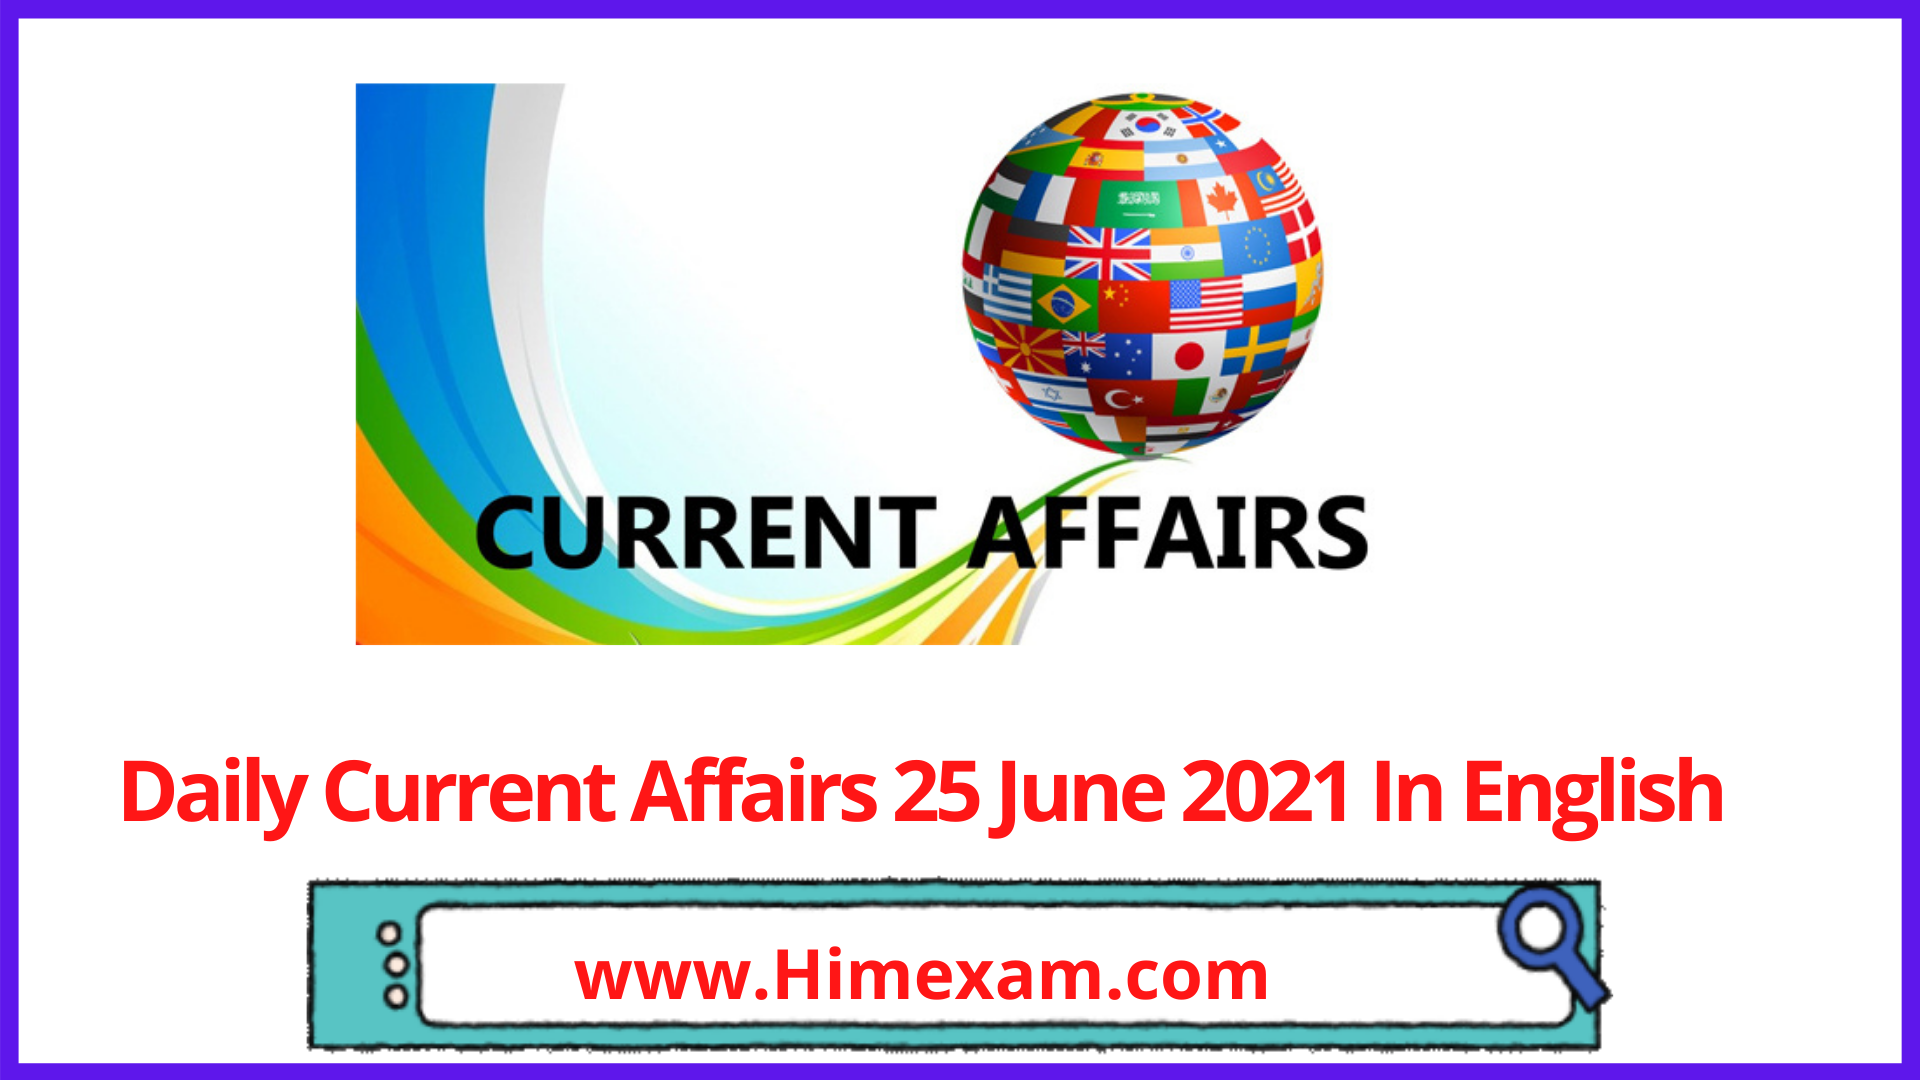 Daily Current Affairs 25 June 2021 In English